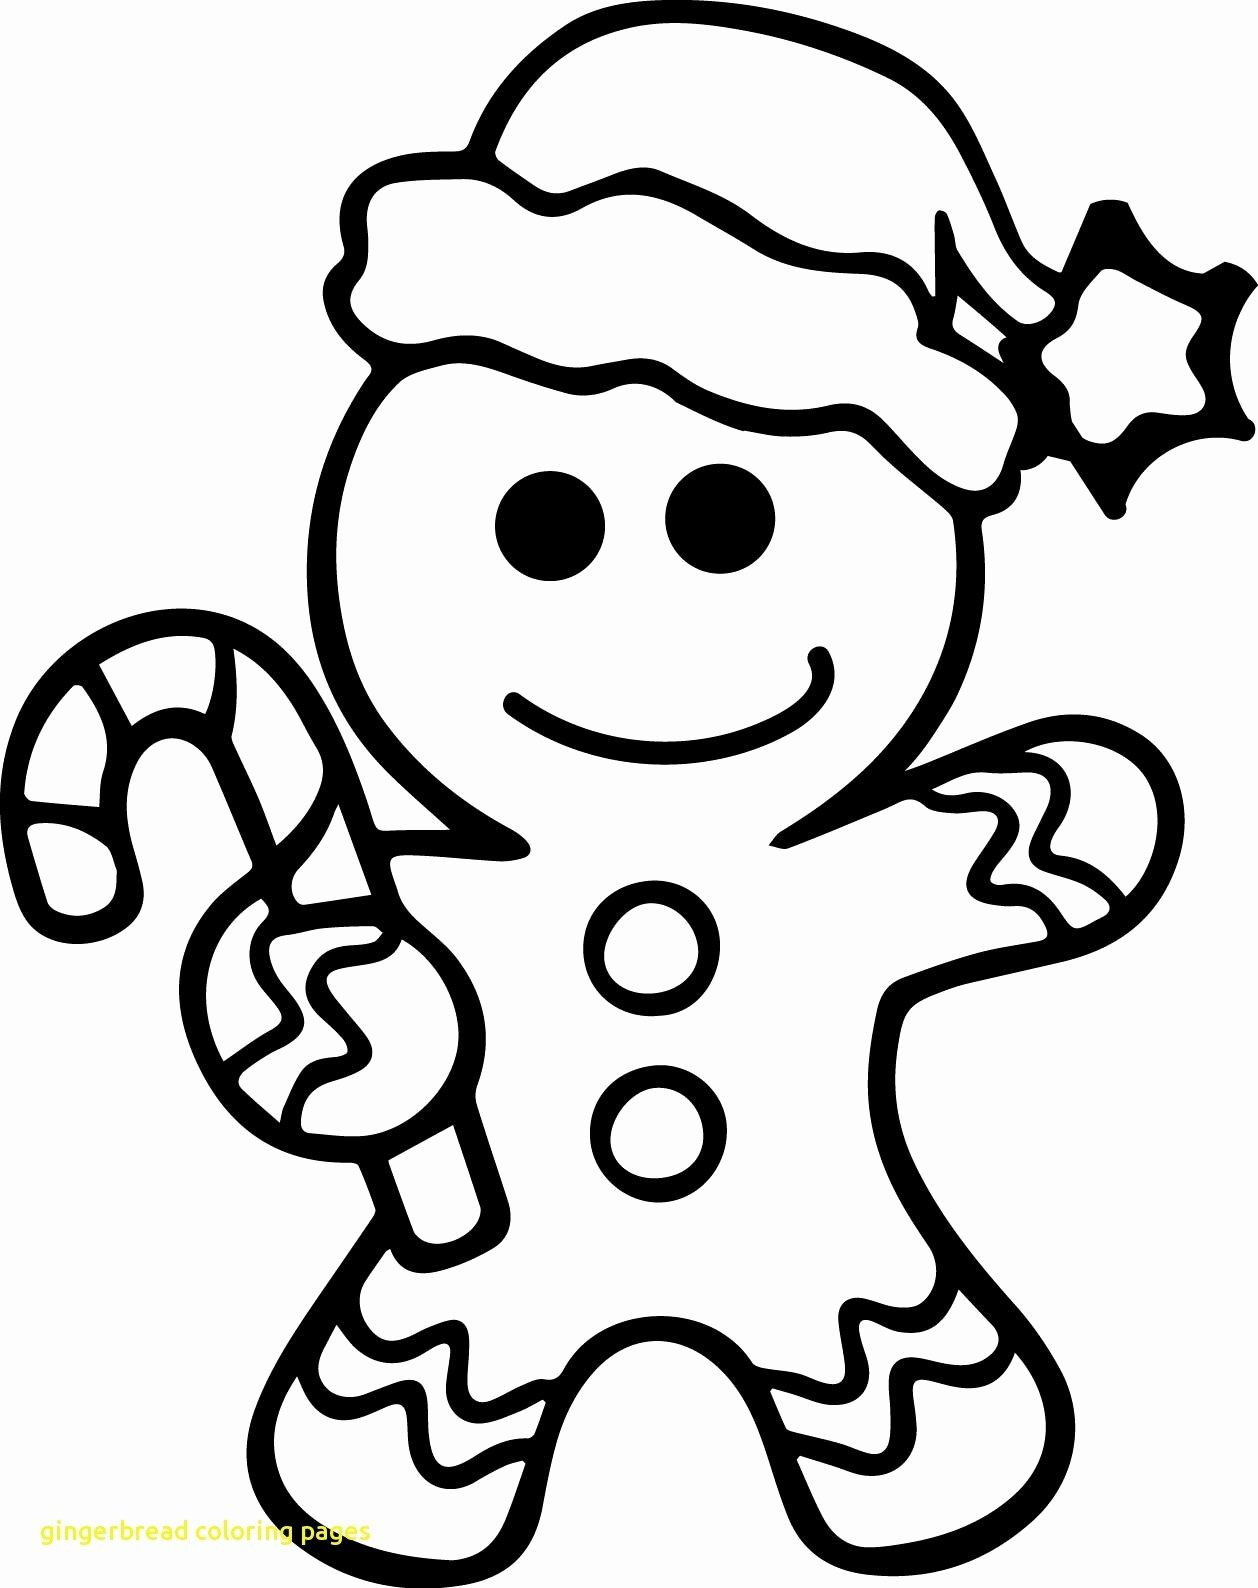 Coloring Activities Ornaments Awesome Coloring Page Christmas Orname Christmas Coloring Sheets Printable Christmas Coloring Pages Gingerbread Man Coloring Page